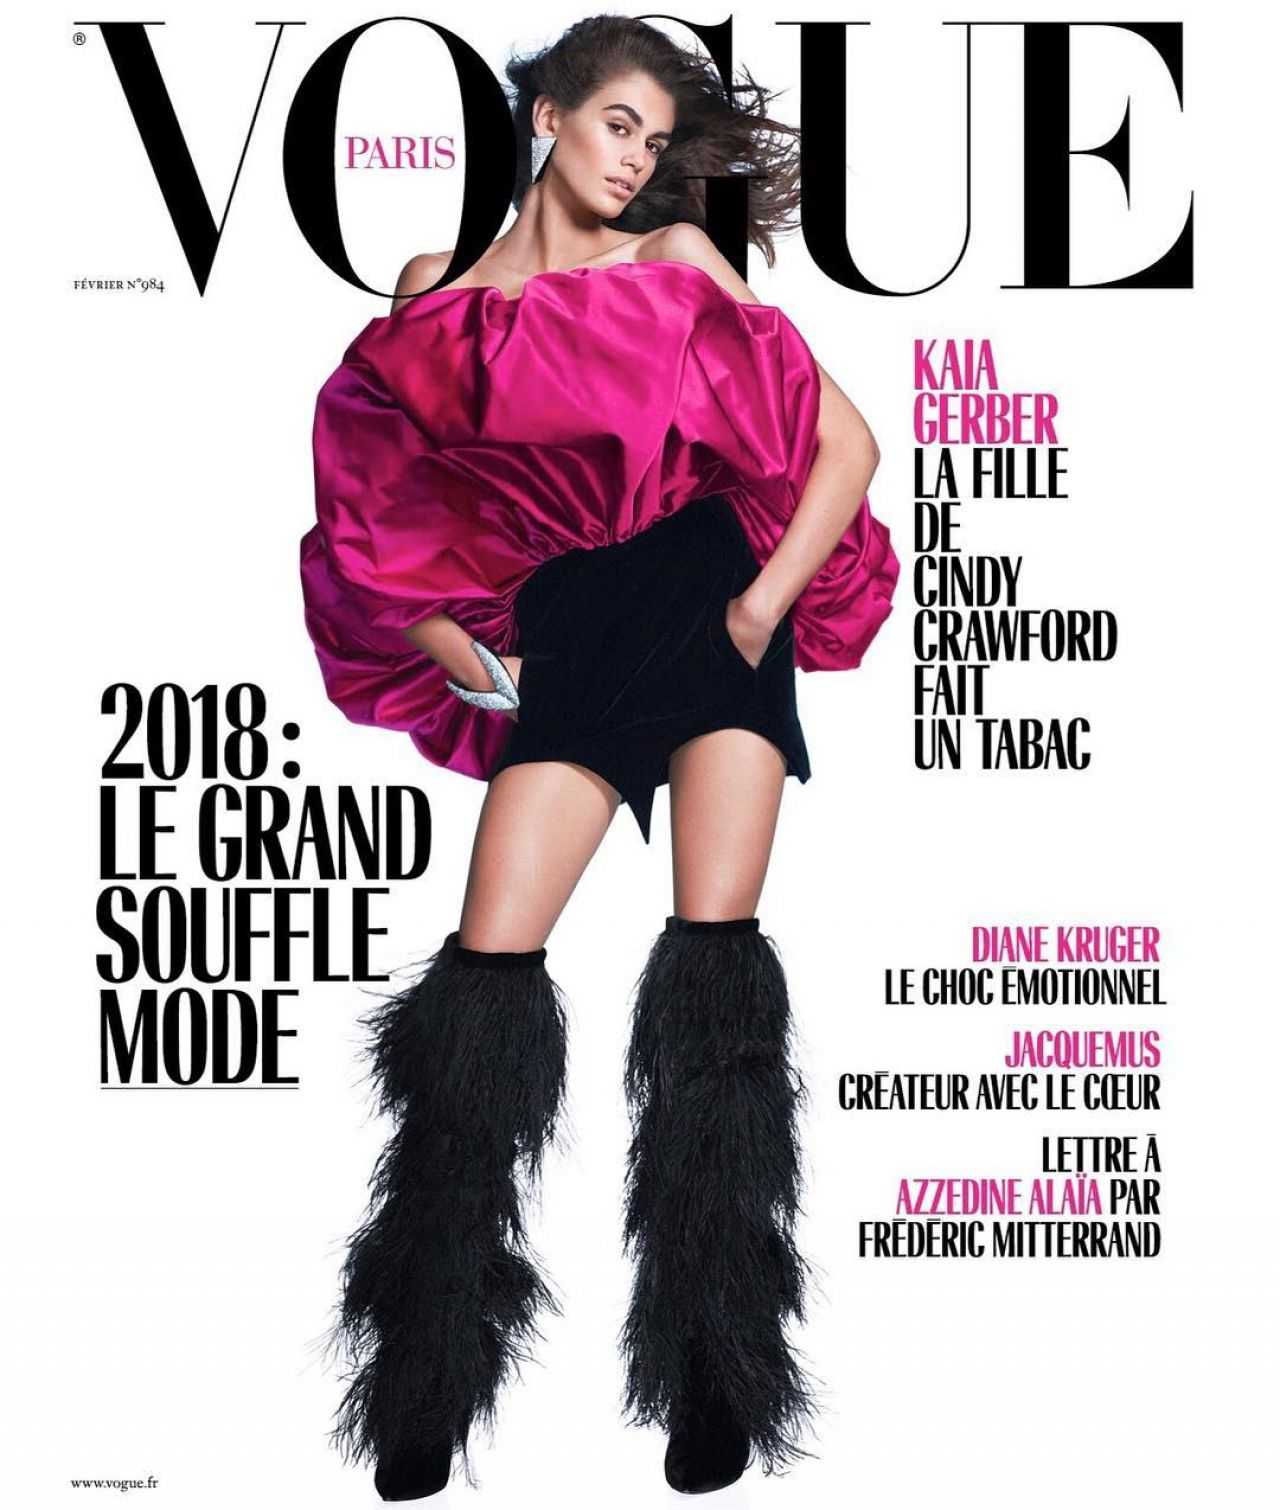 kaia-gerber-vogue-paris-february-2018-cover-0